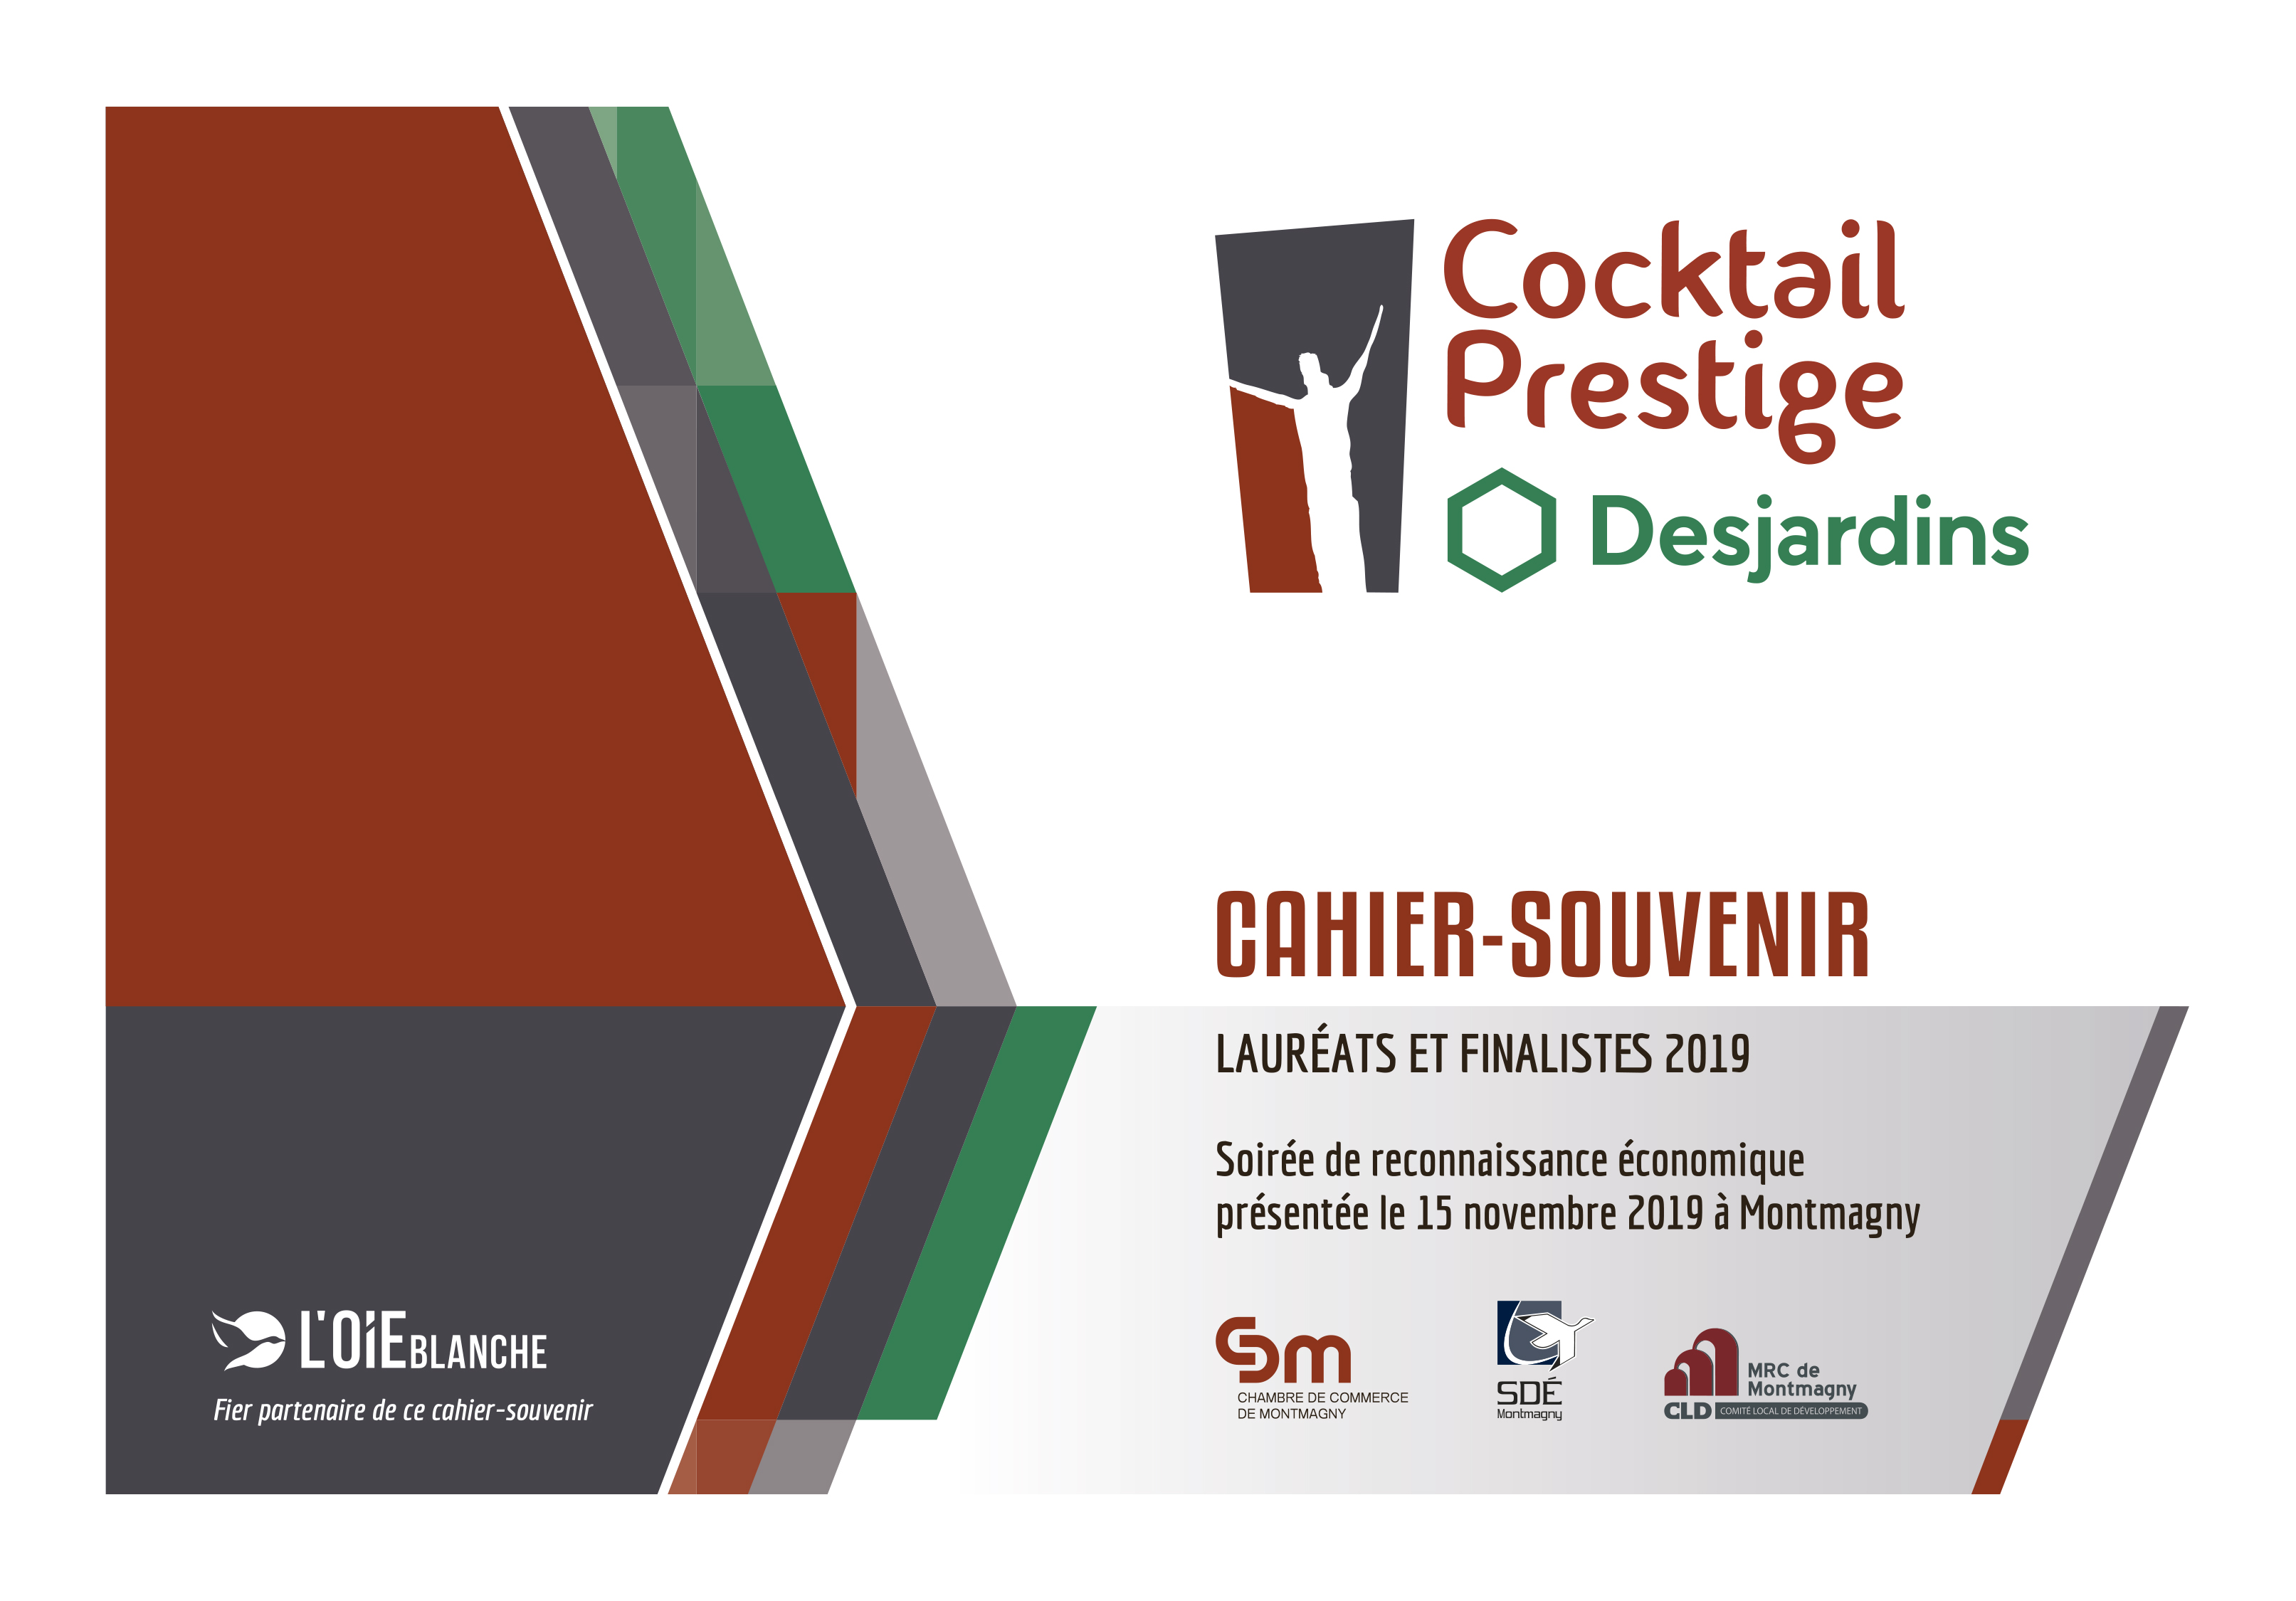 Cocktail Prestige Desjardins